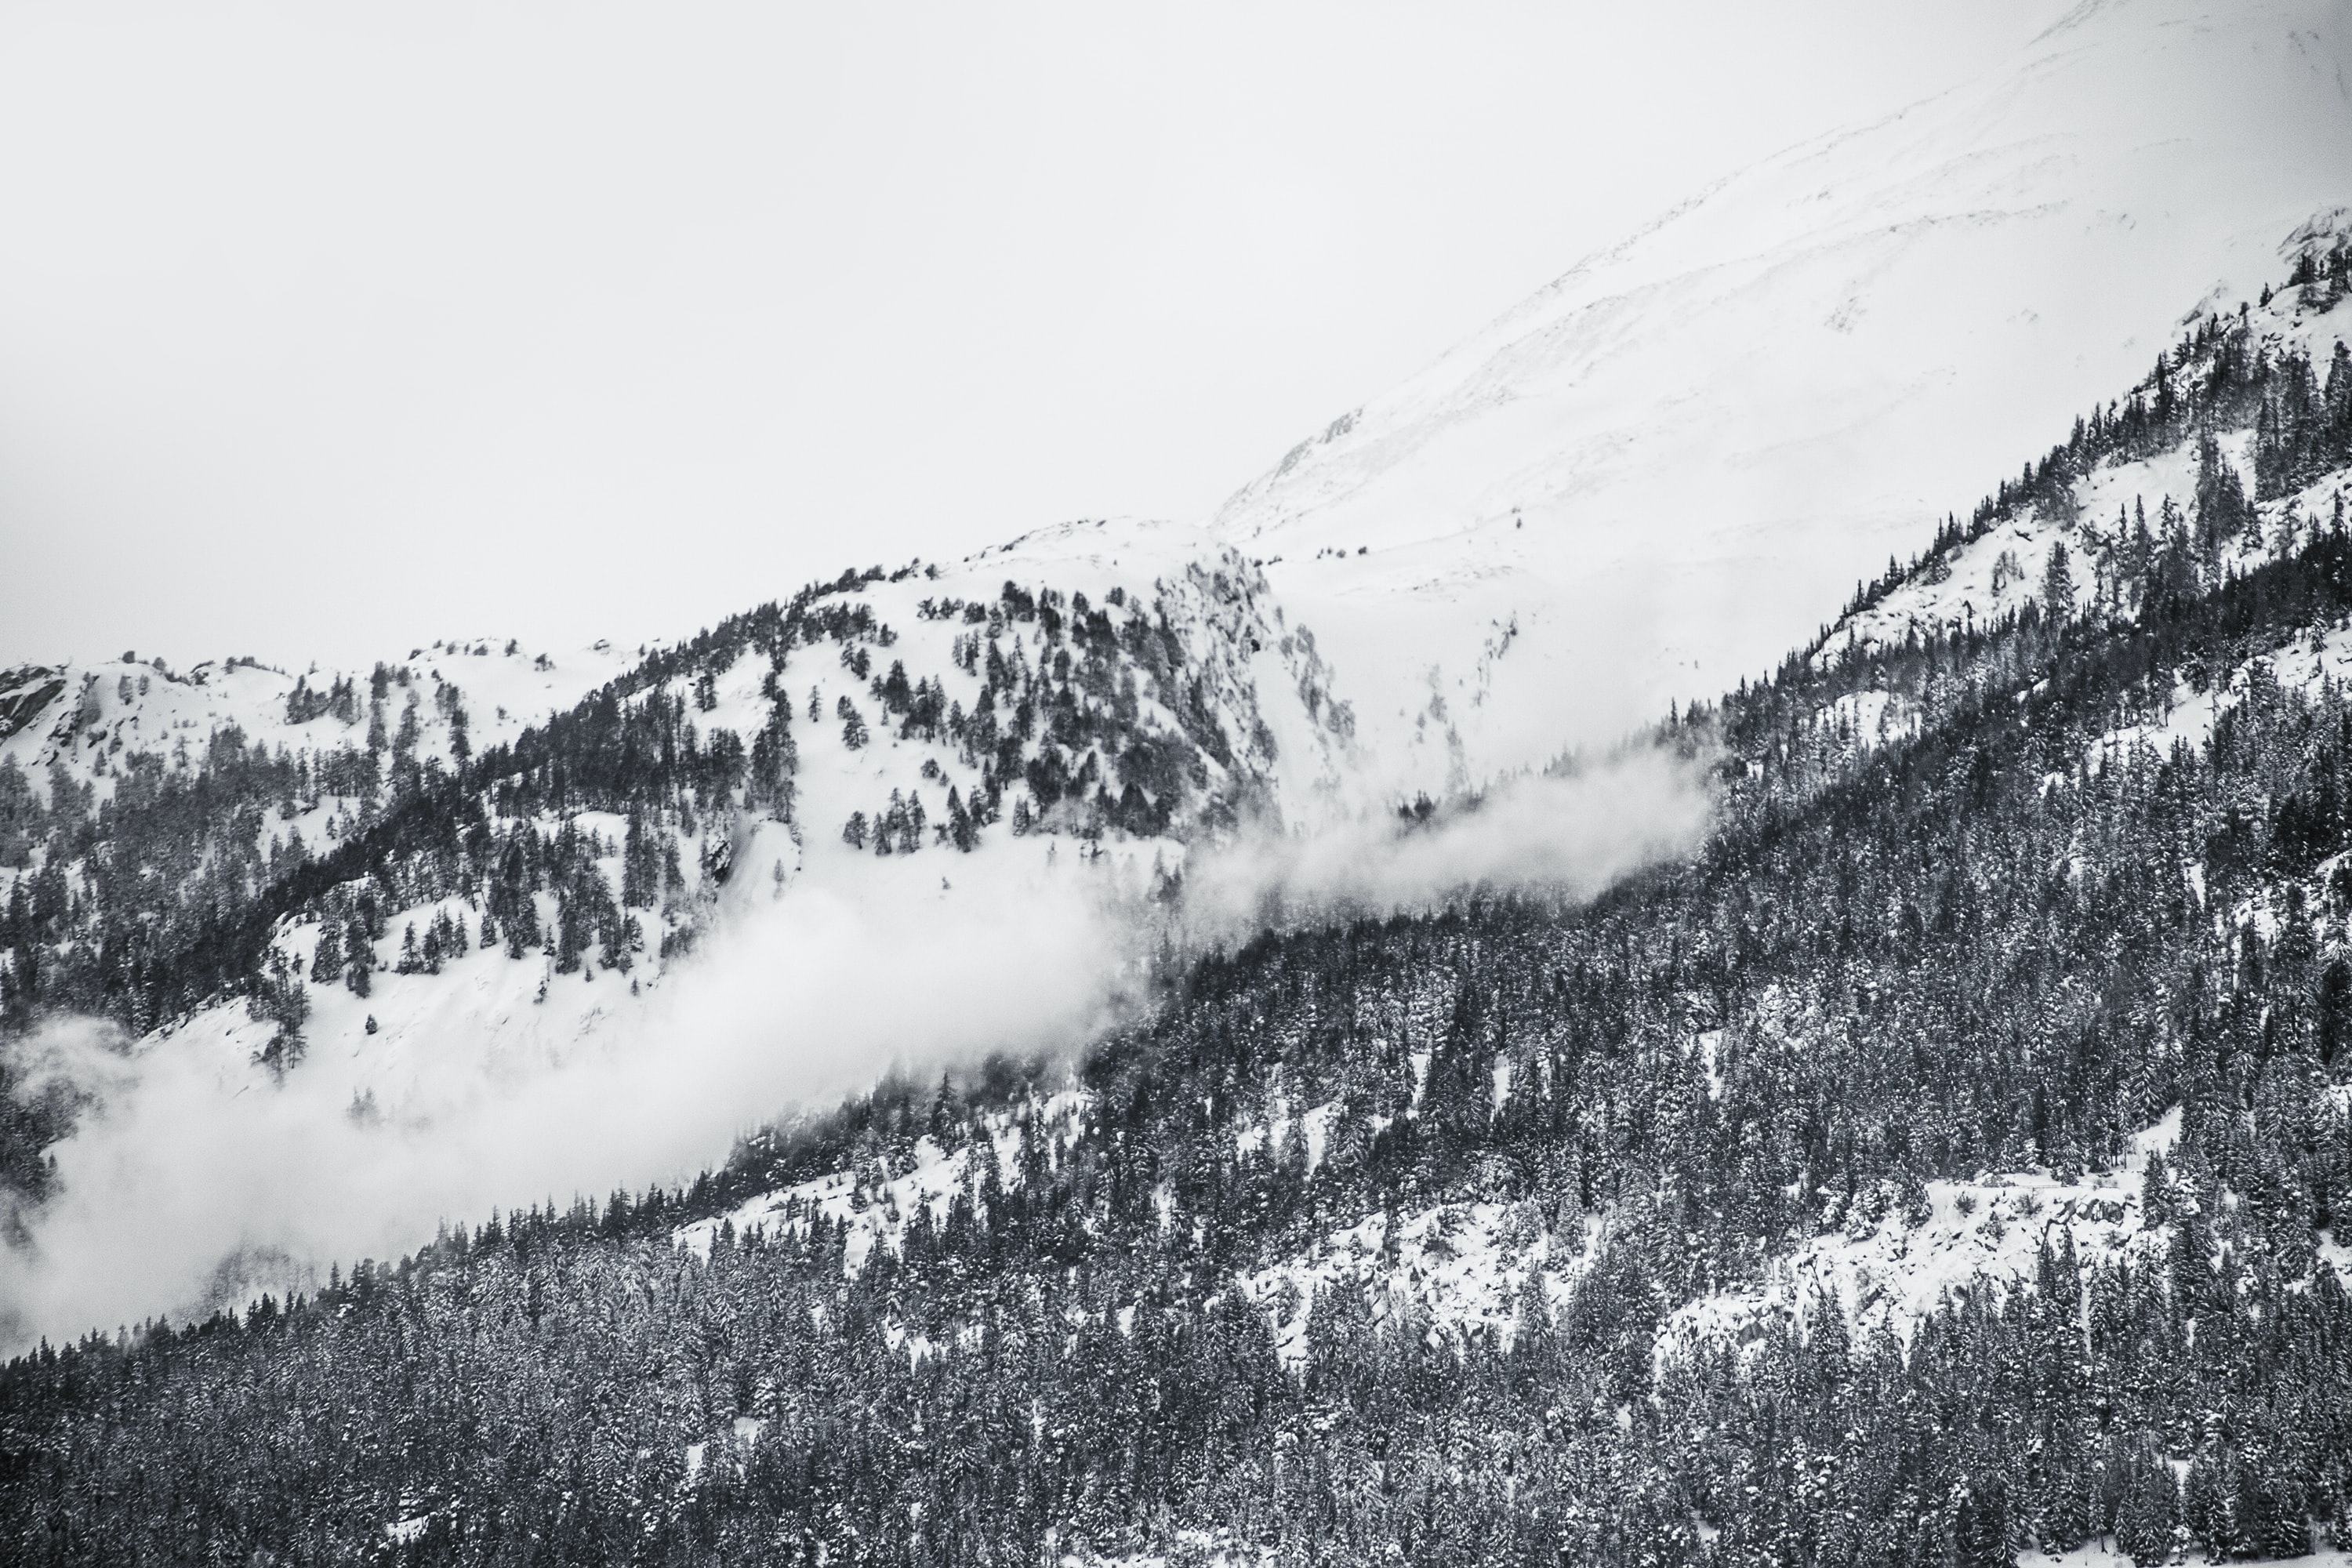 grayscale photography of snowy mountain